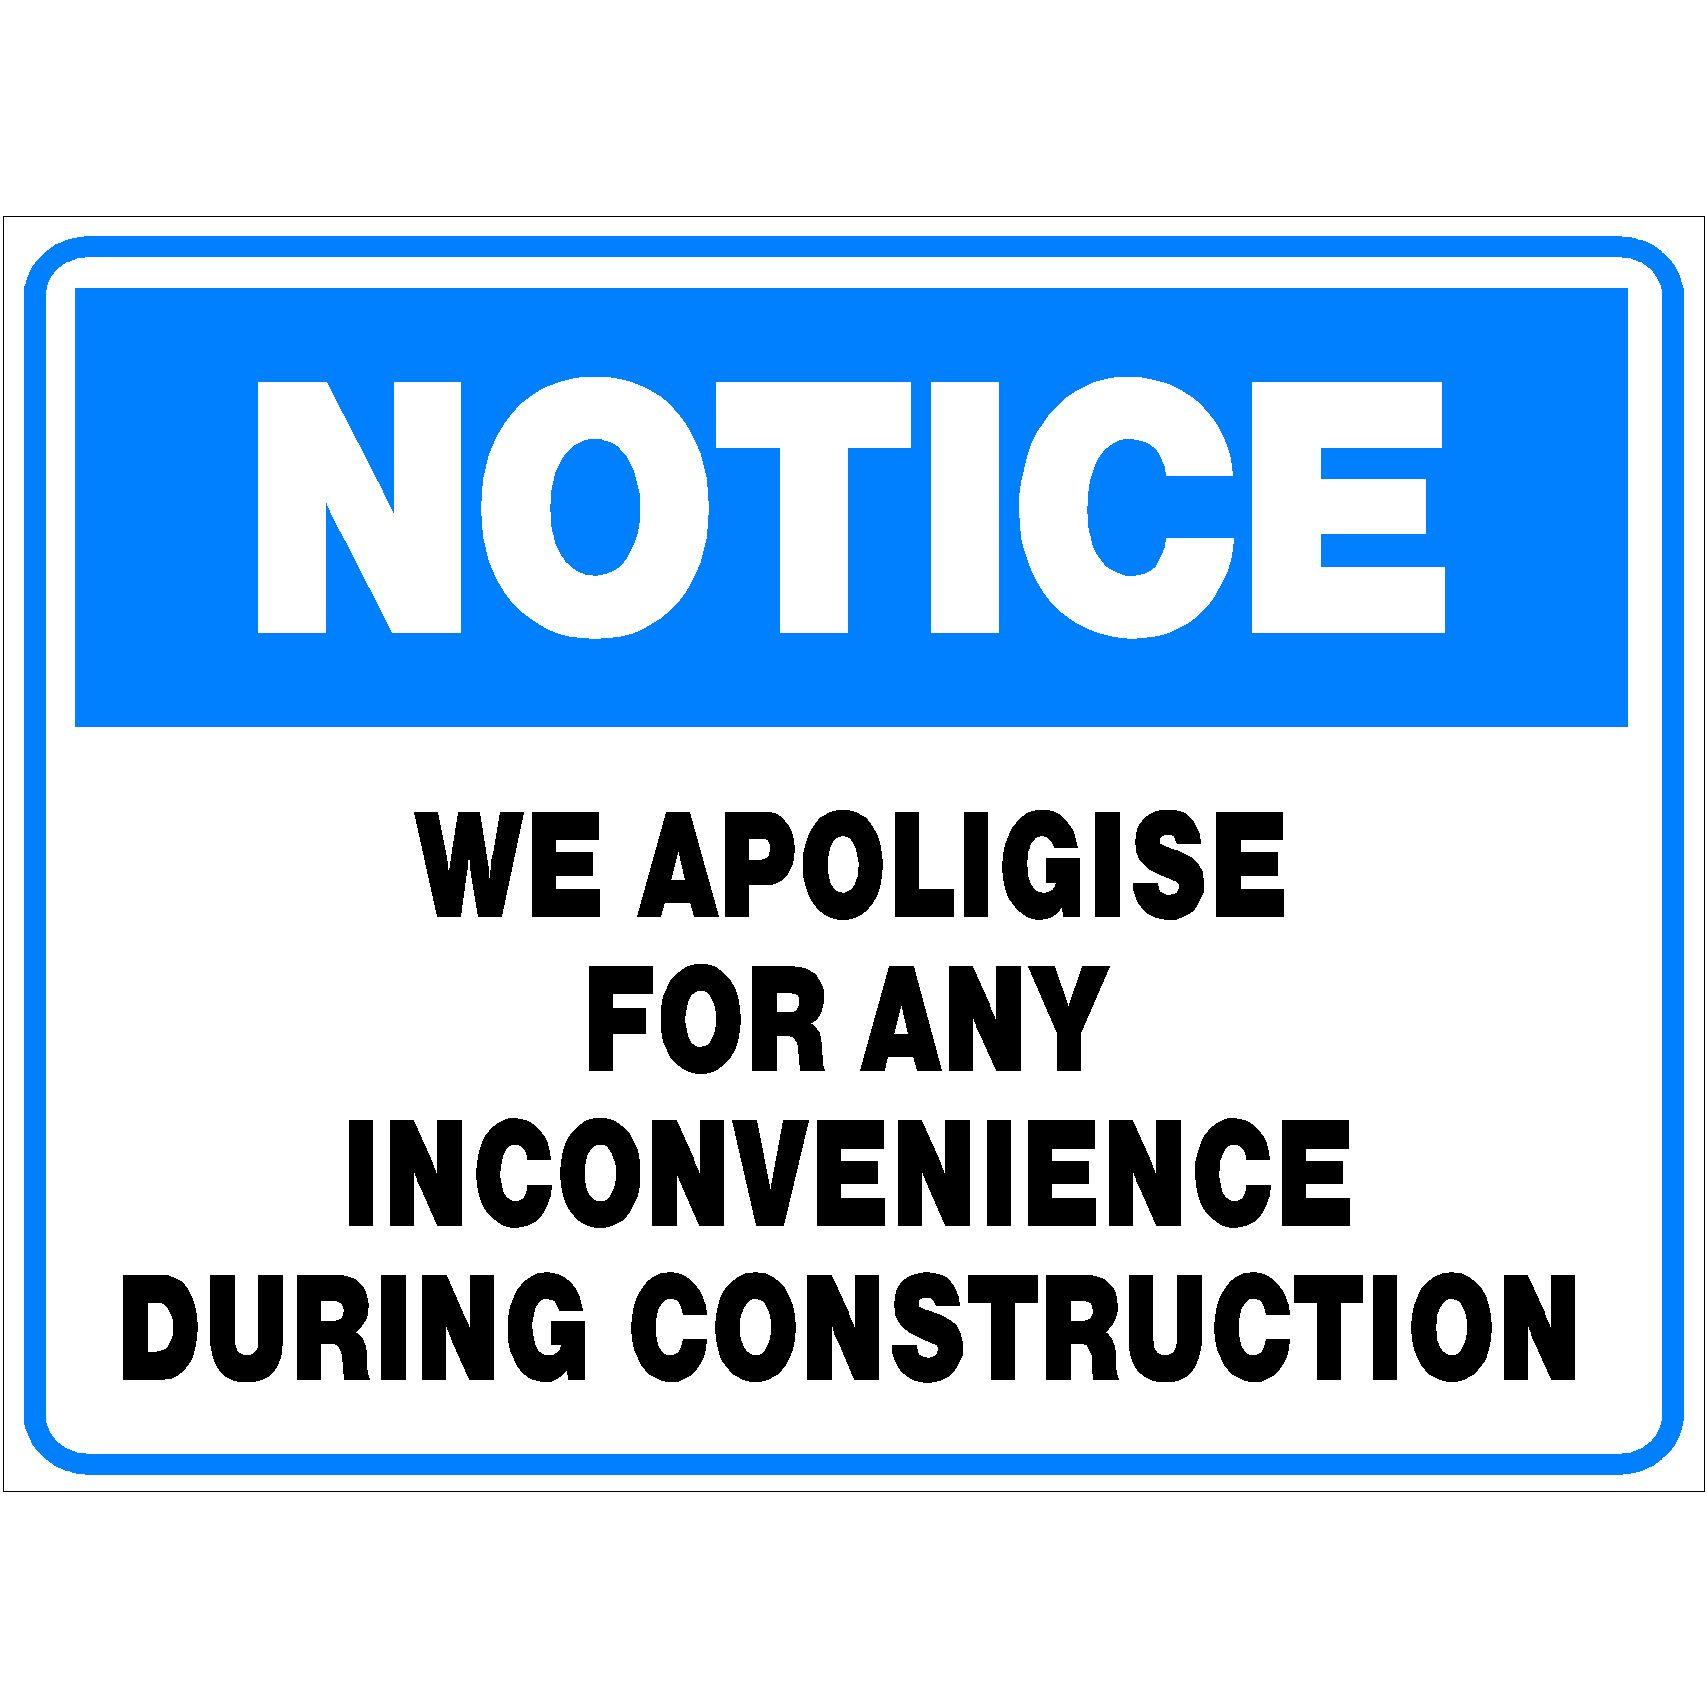 Notice We Apologise For Any Inconvenience During Construction